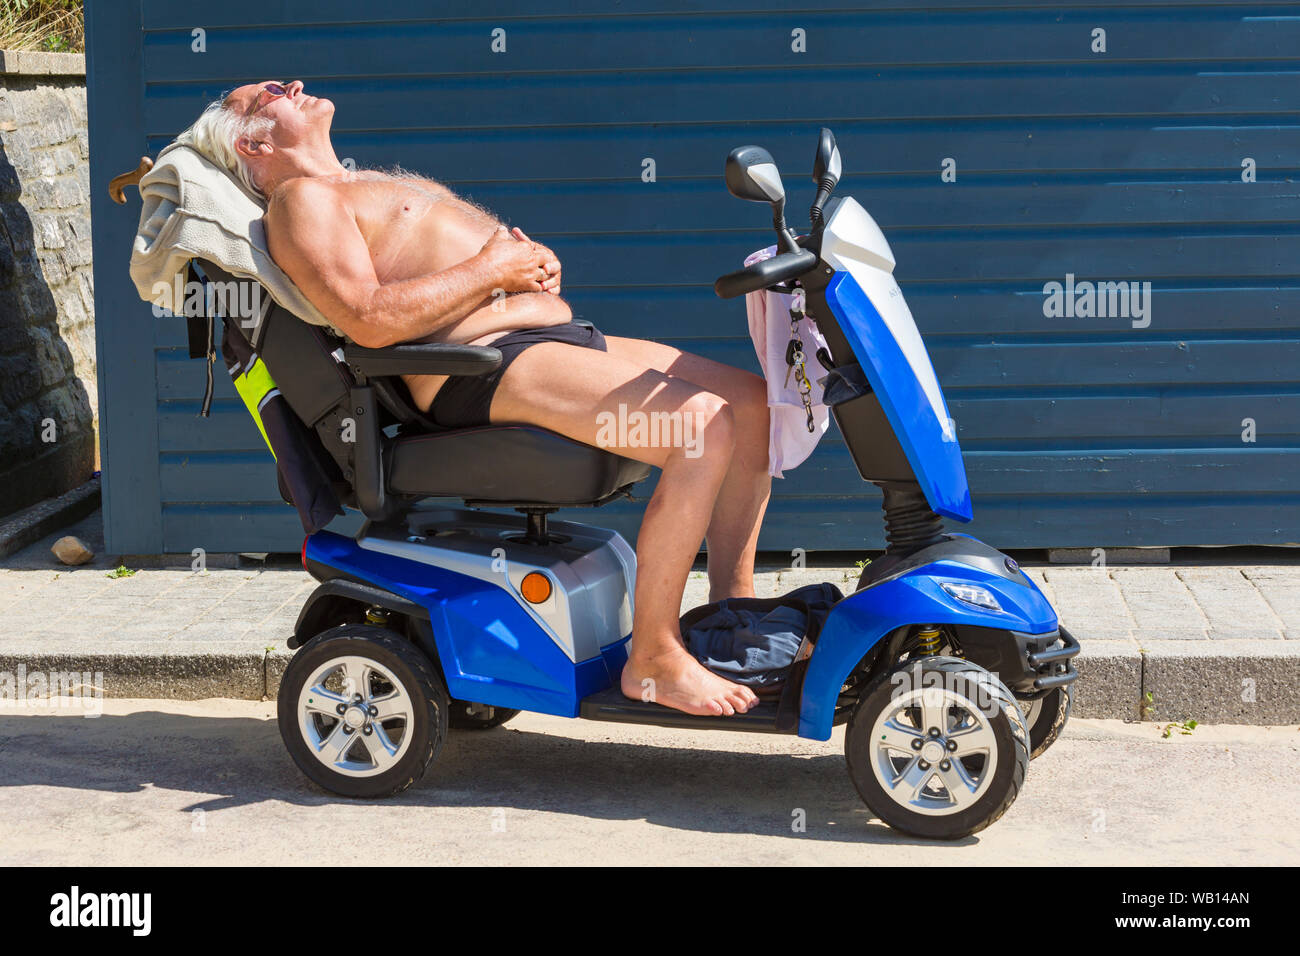 Bournemouth, Dorset UK. 23rd Aug 2019. UK weather: an overcast start turns into a lovely warm sunny day as beachgoers head to the seaside at Bournemouth beaches to enjoy the sunshine, as temperatures are set to get higher for the Bank Holiday weekend. Paul soaks up the sun sunbathing on his scooter. Credit: Carolyn Jenkins/Alamy Live News Stock Photo